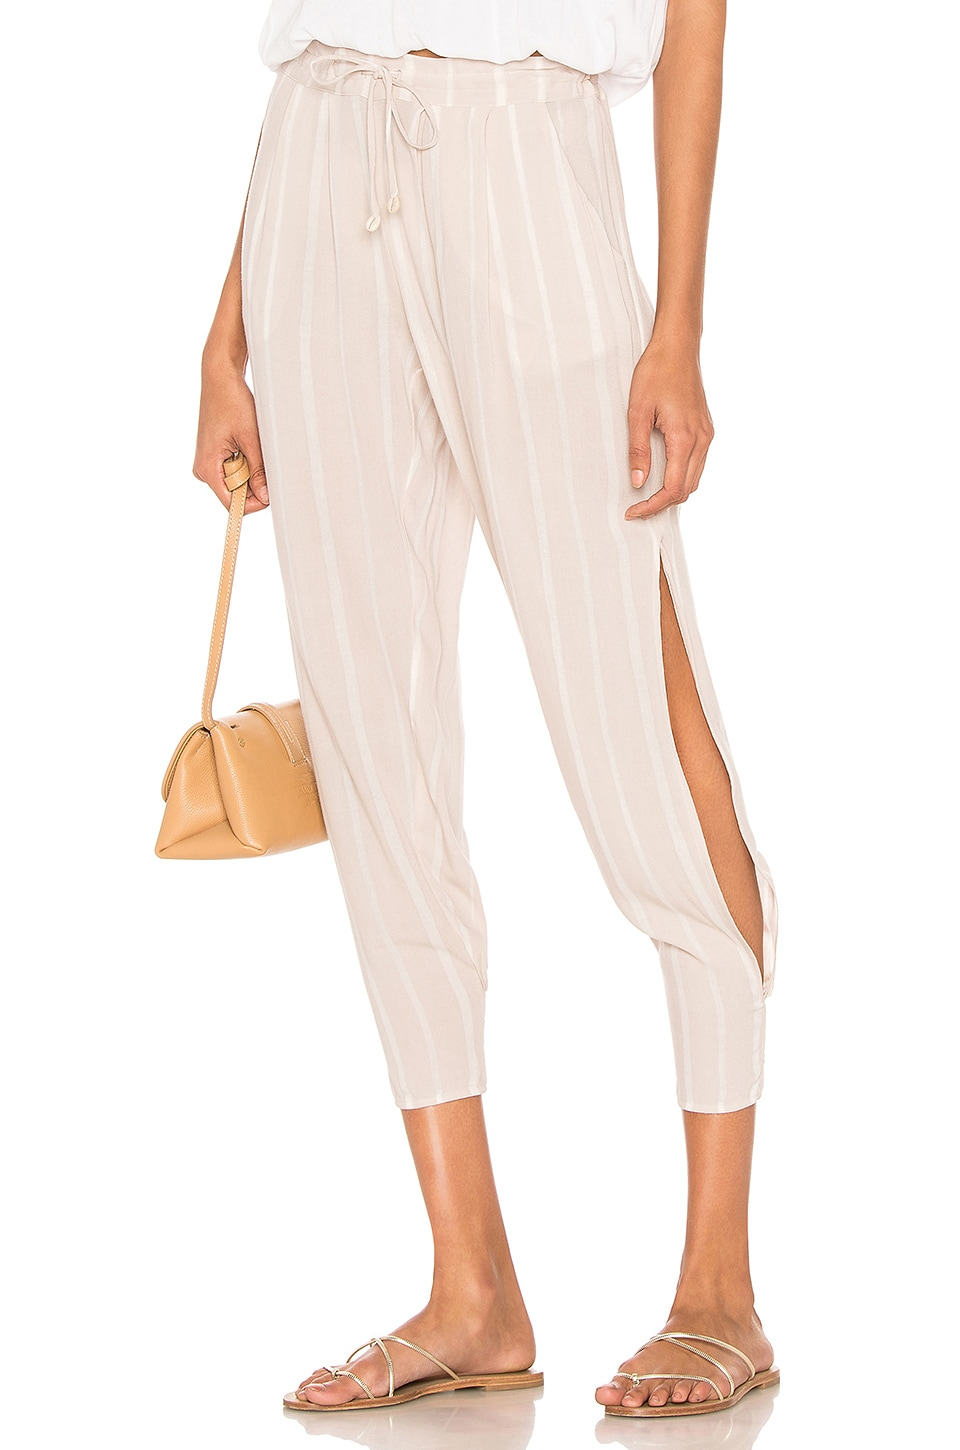 Indah Alligator Side Slit Pant in Stone Stripe